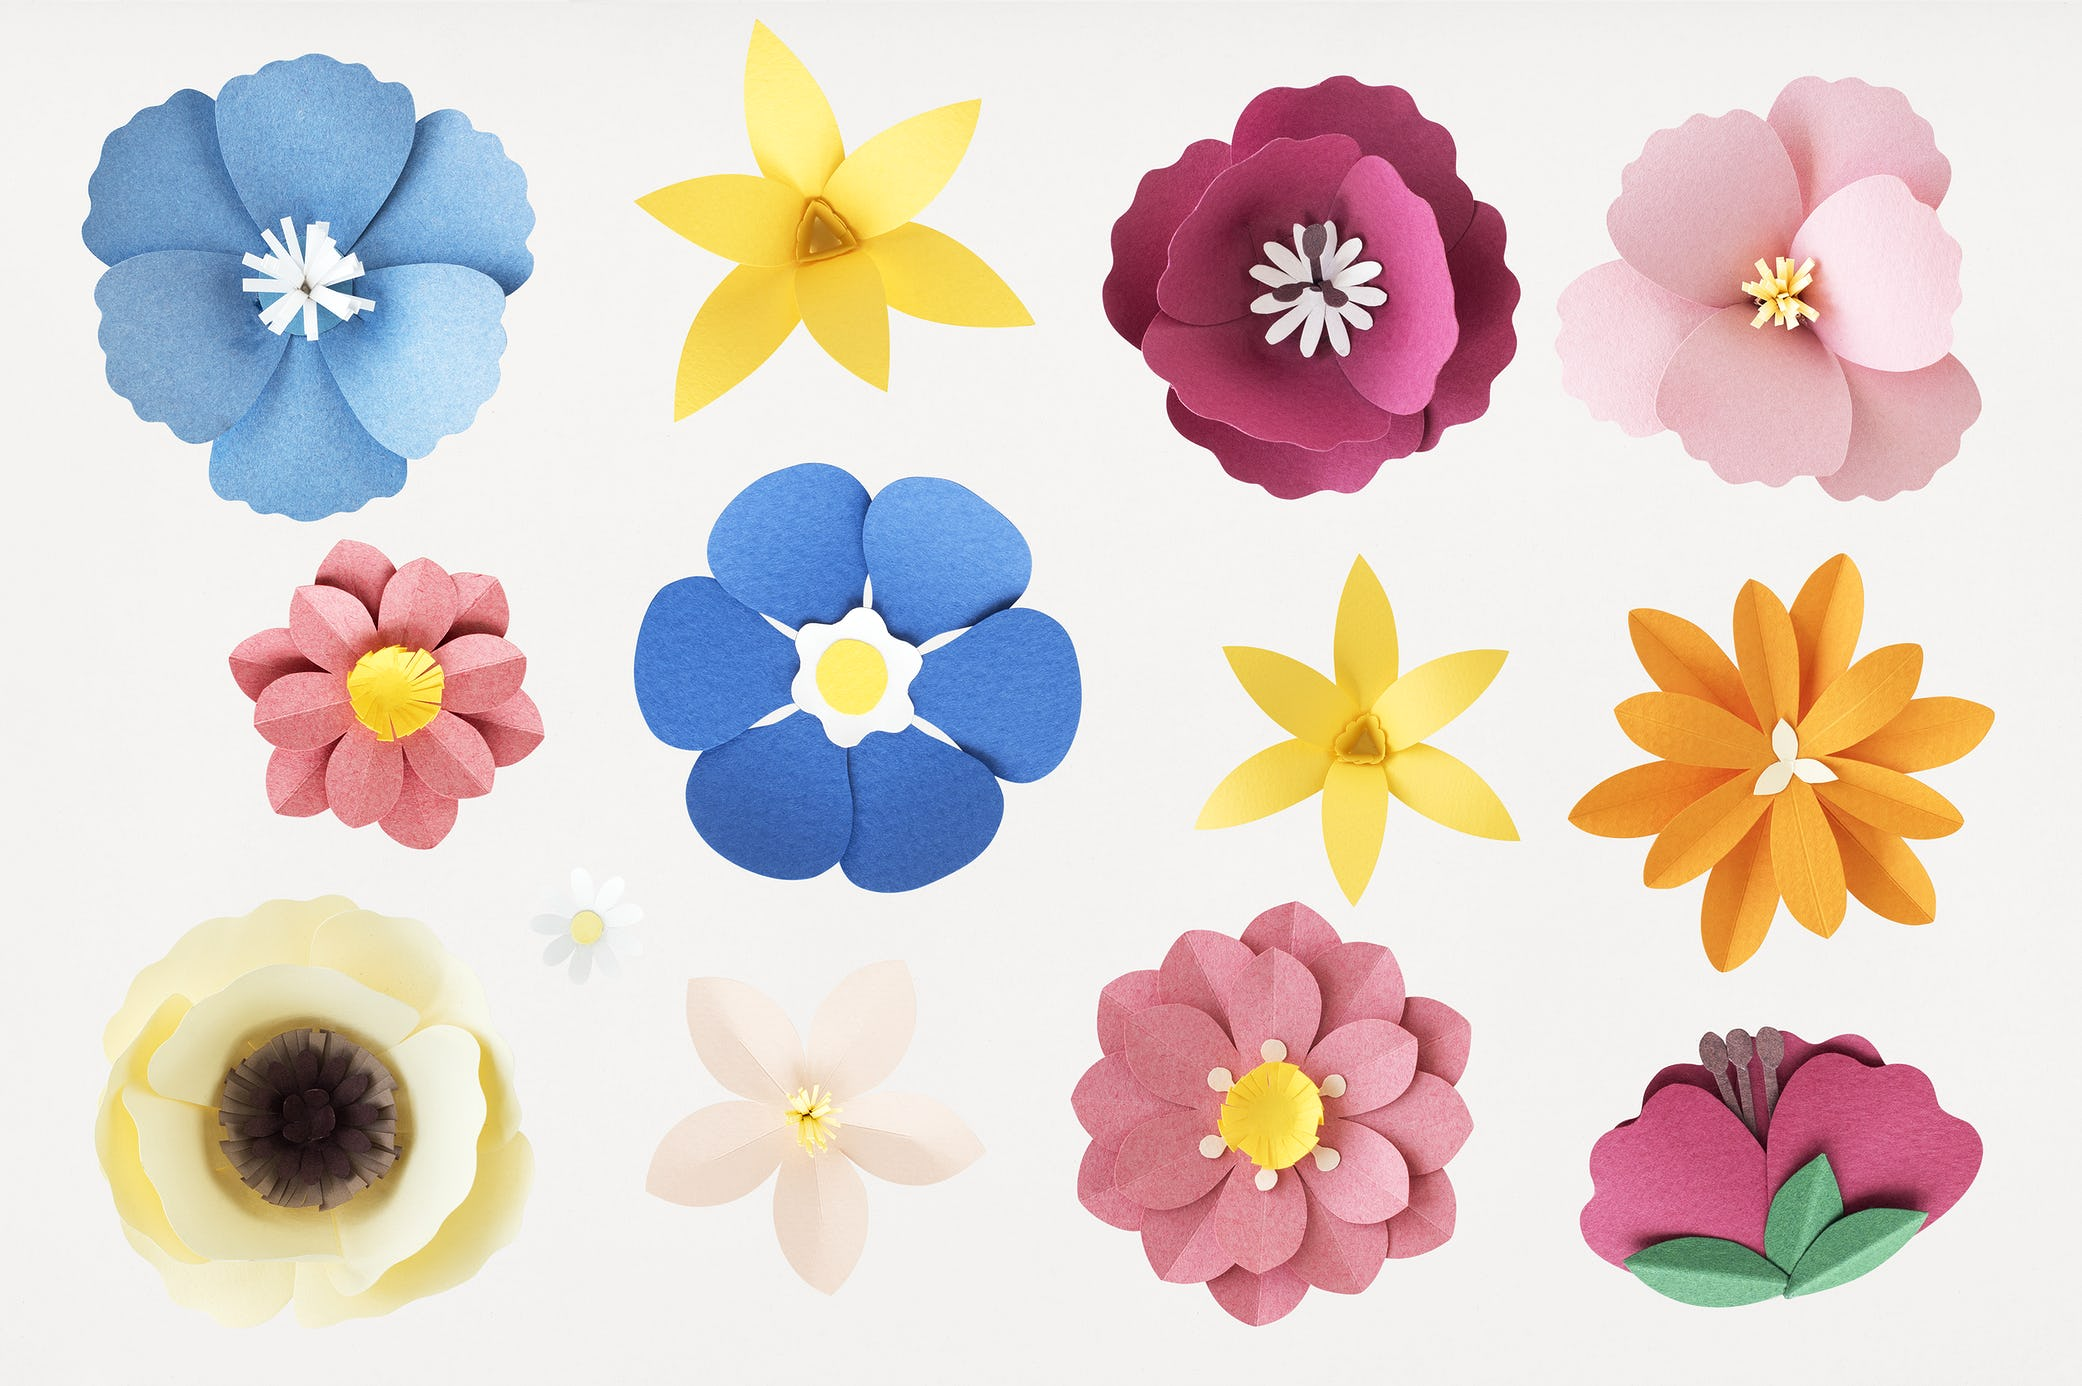 Paper craft summer flowers set of flowers and plants made out of paper plants paper paper craft mightylinksfo